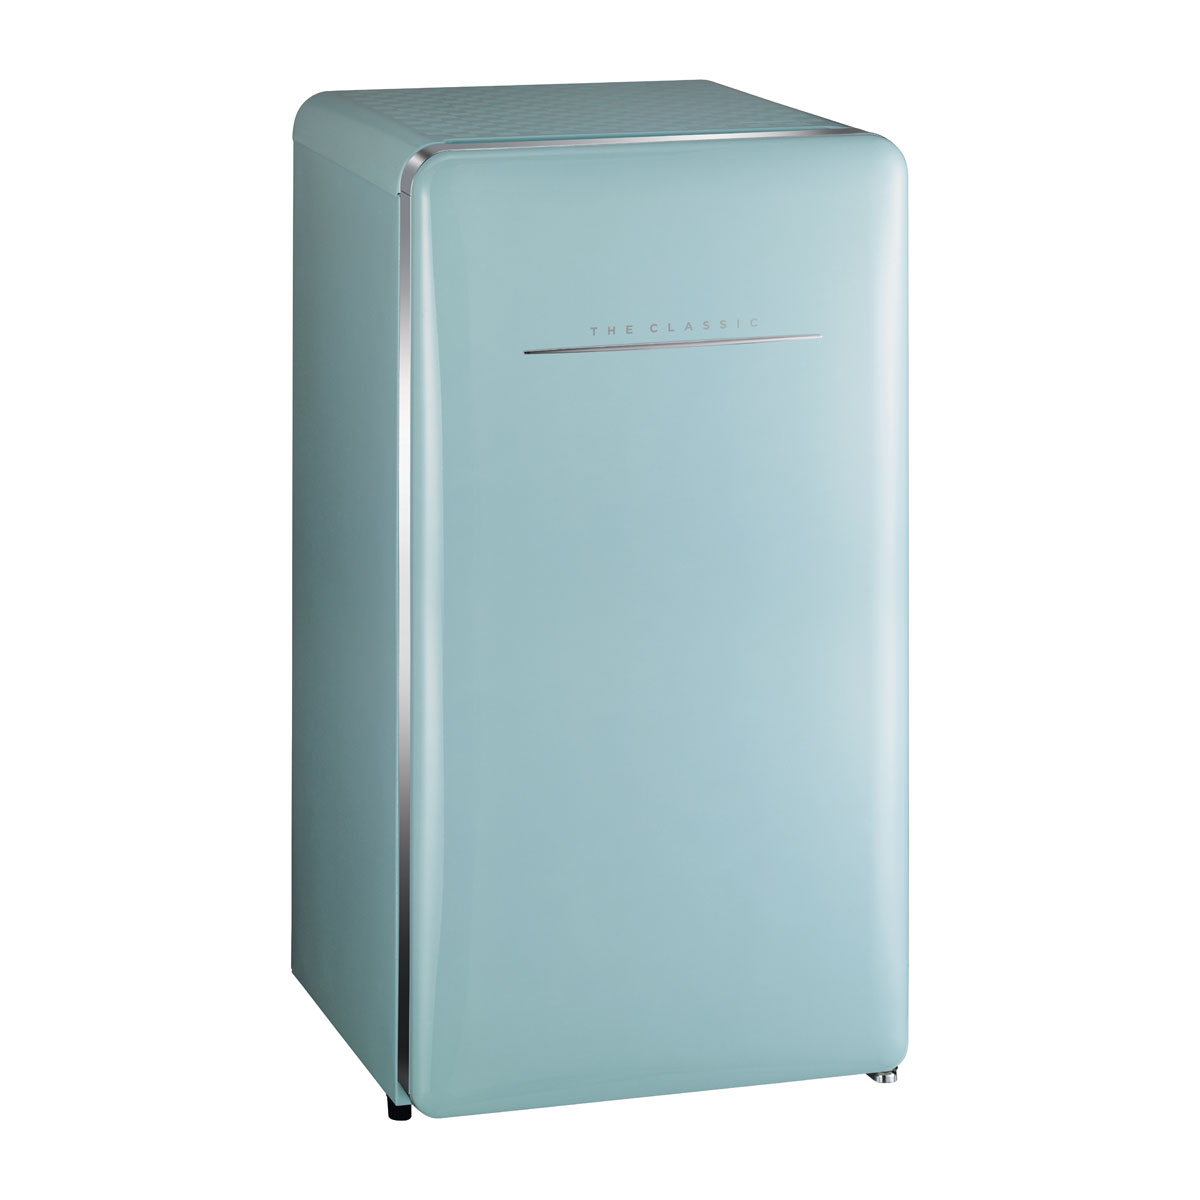 frigo bar retro daewoo 120l mod fr 153mg menta. Black Bedroom Furniture Sets. Home Design Ideas